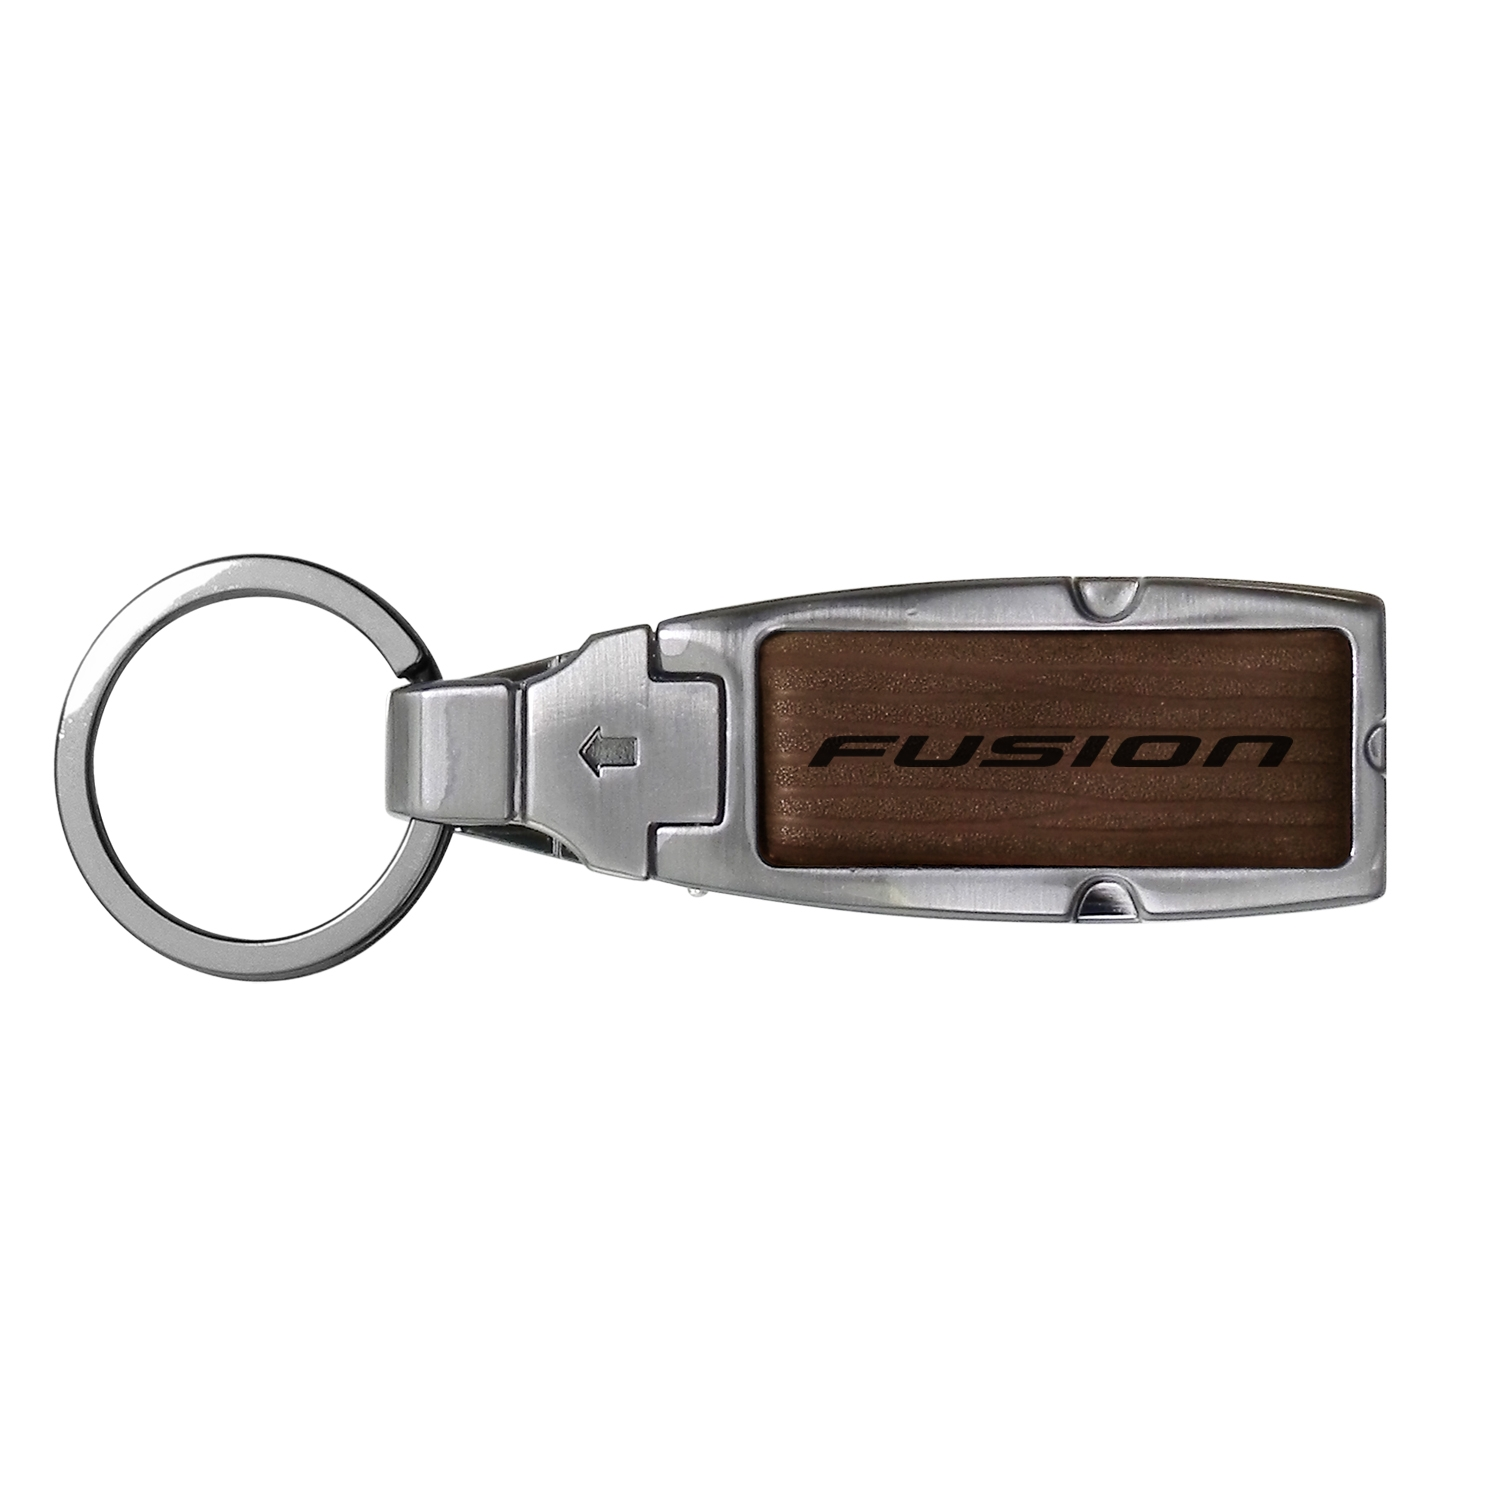 Ford Fusion Brown Leather Detachable Ring Black Metal Key Chain